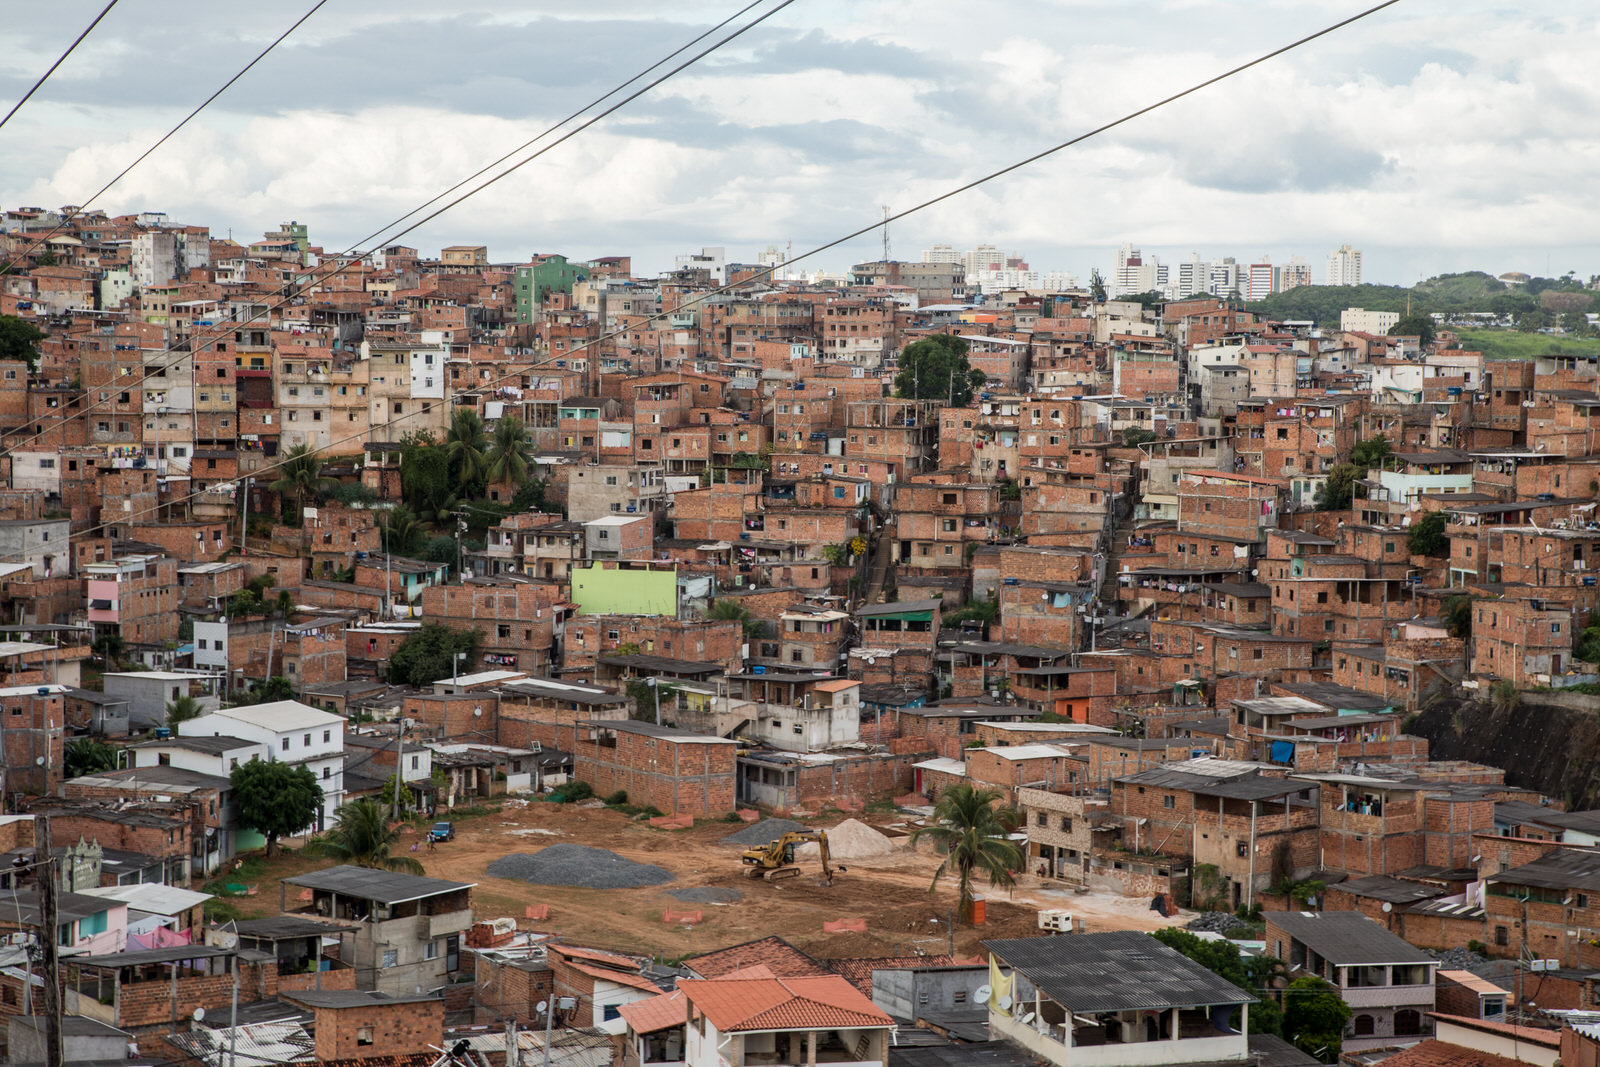 The Linha Viva project would cut right through the large neighbourhood, uprooting many and dividing the community, a threat that hampers not only the right to the city of vulnerable populations, but also their dignity.